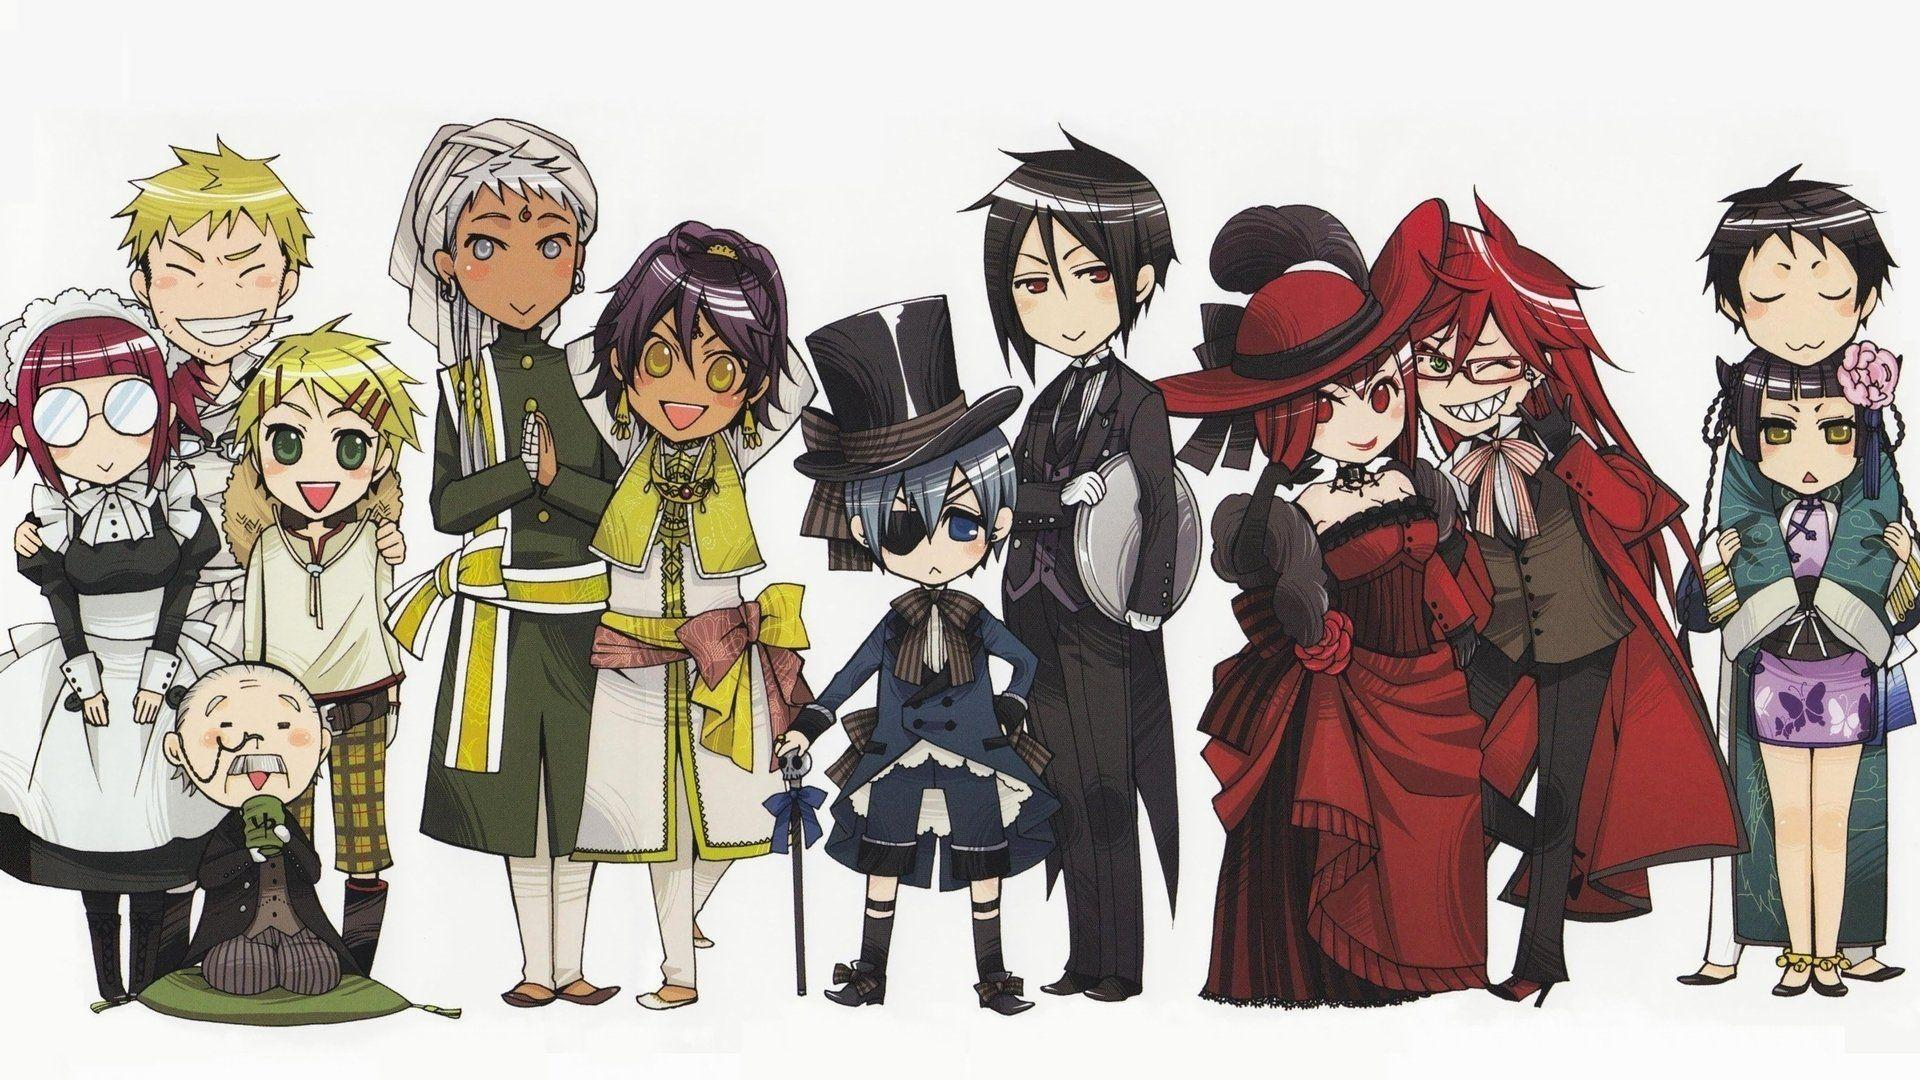 259 Black Butler HD Wallpapers | Background Images - Wallpaper Abyss